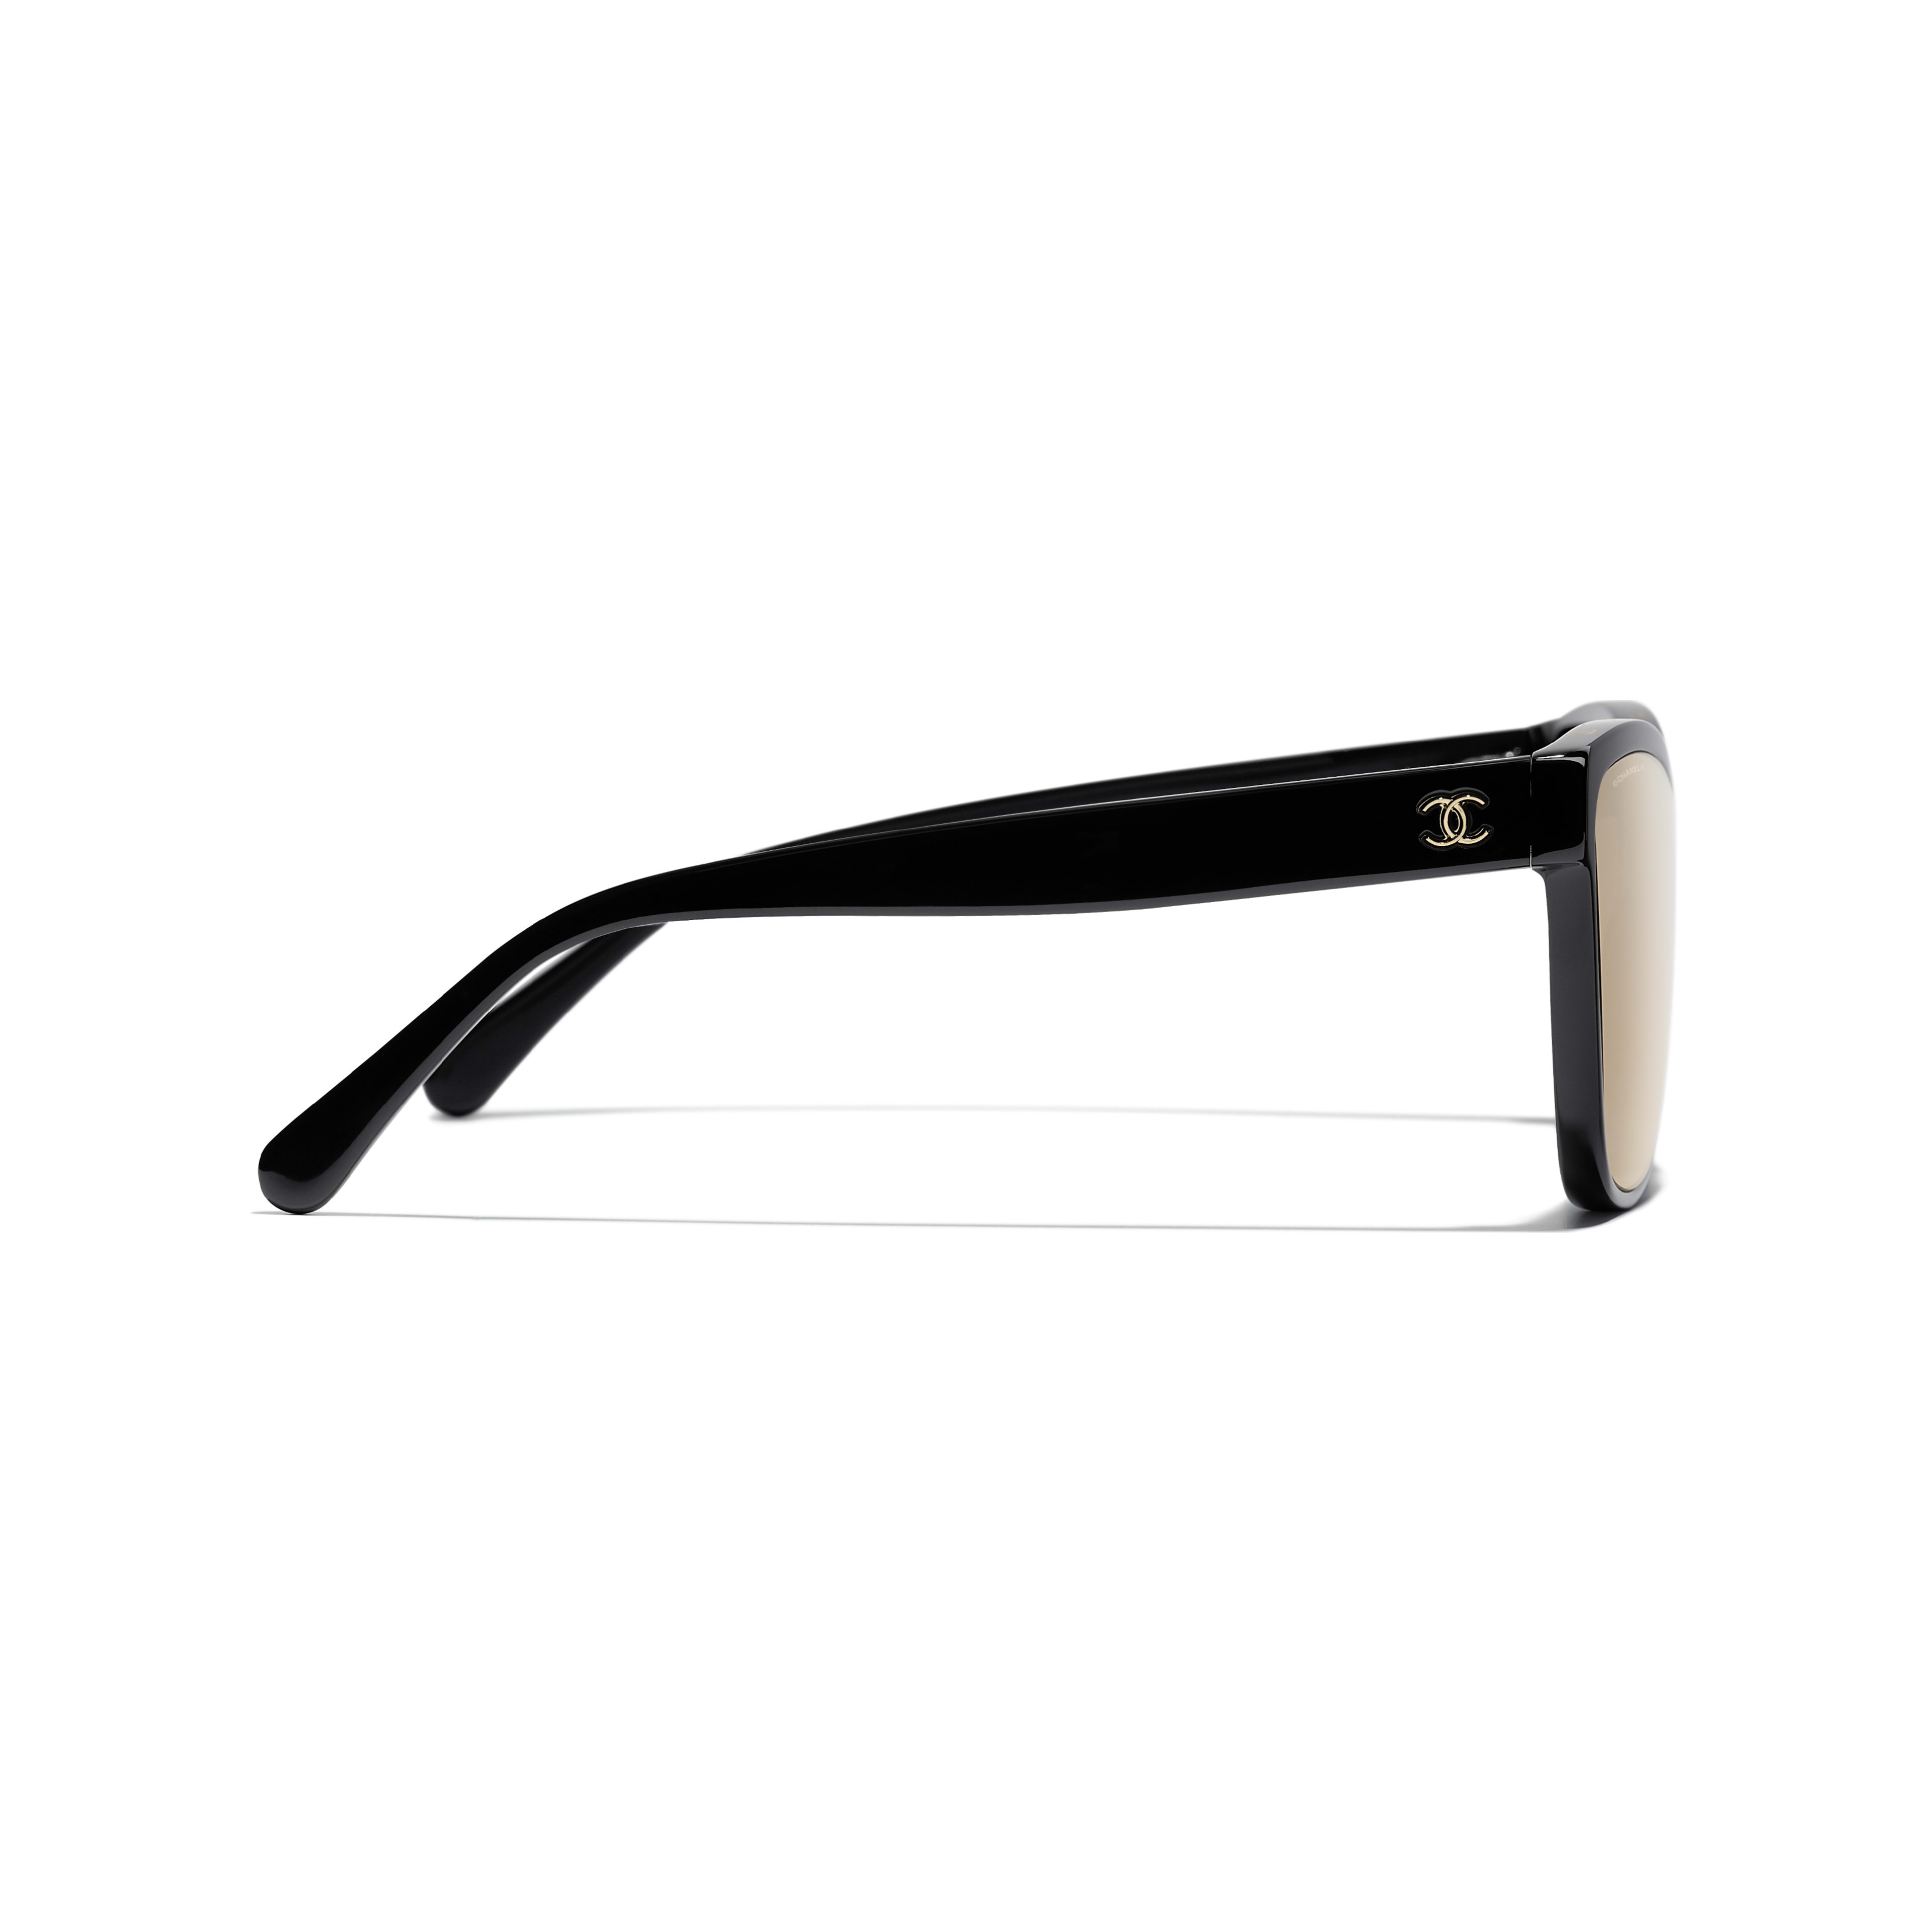 Shield Sunglasses - Black - Acetate - Other view - see full sized version